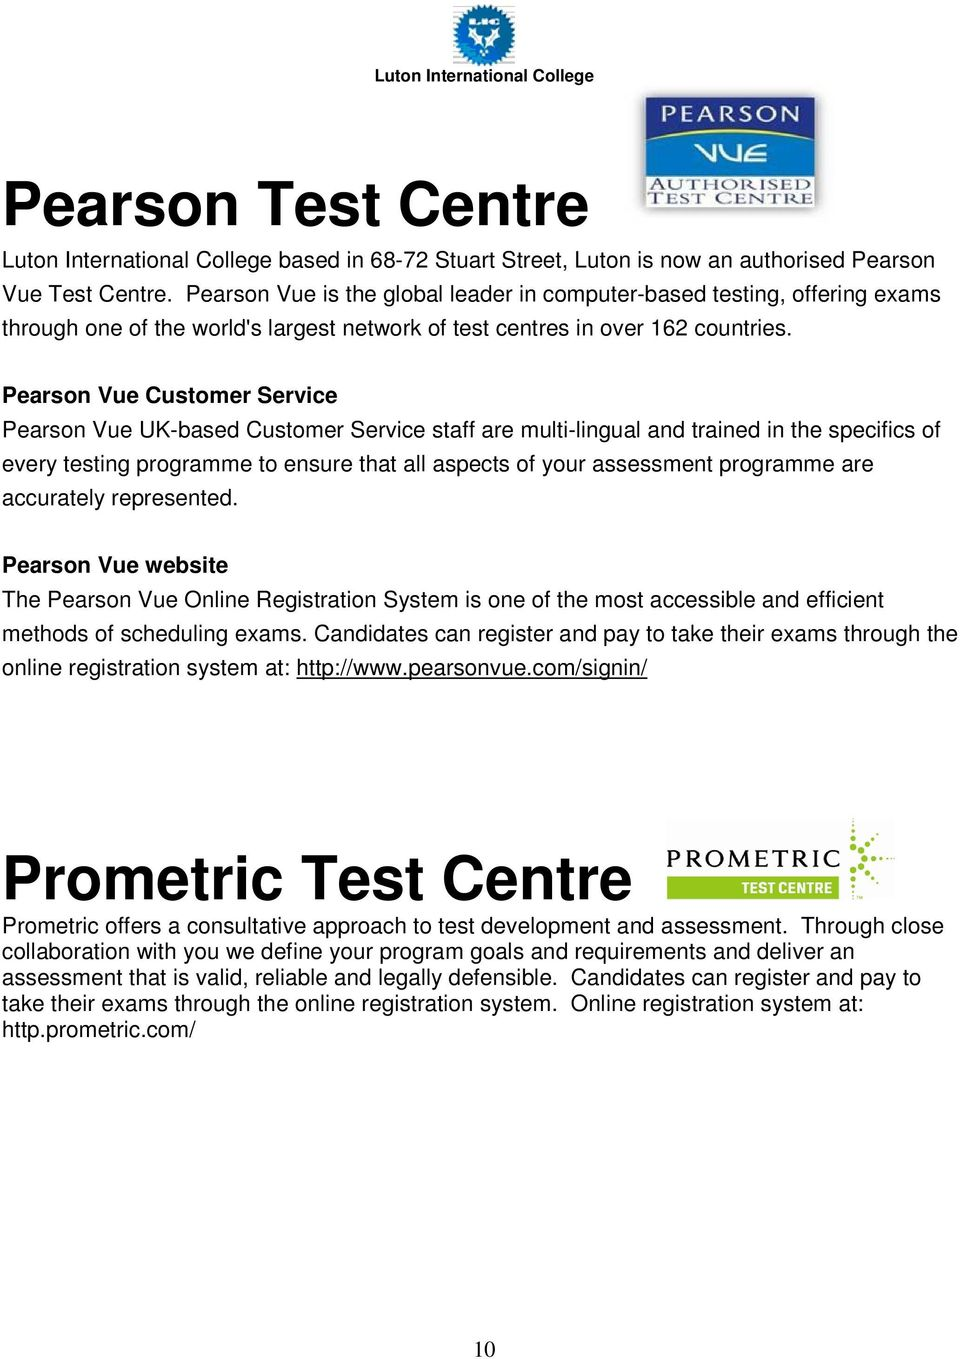 Pearson Vue Customer Service Pearson Vue UK-based Customer Service staff are multi-lingual and trained in the specifics of every testing programme to ensure that all aspects of your assessment